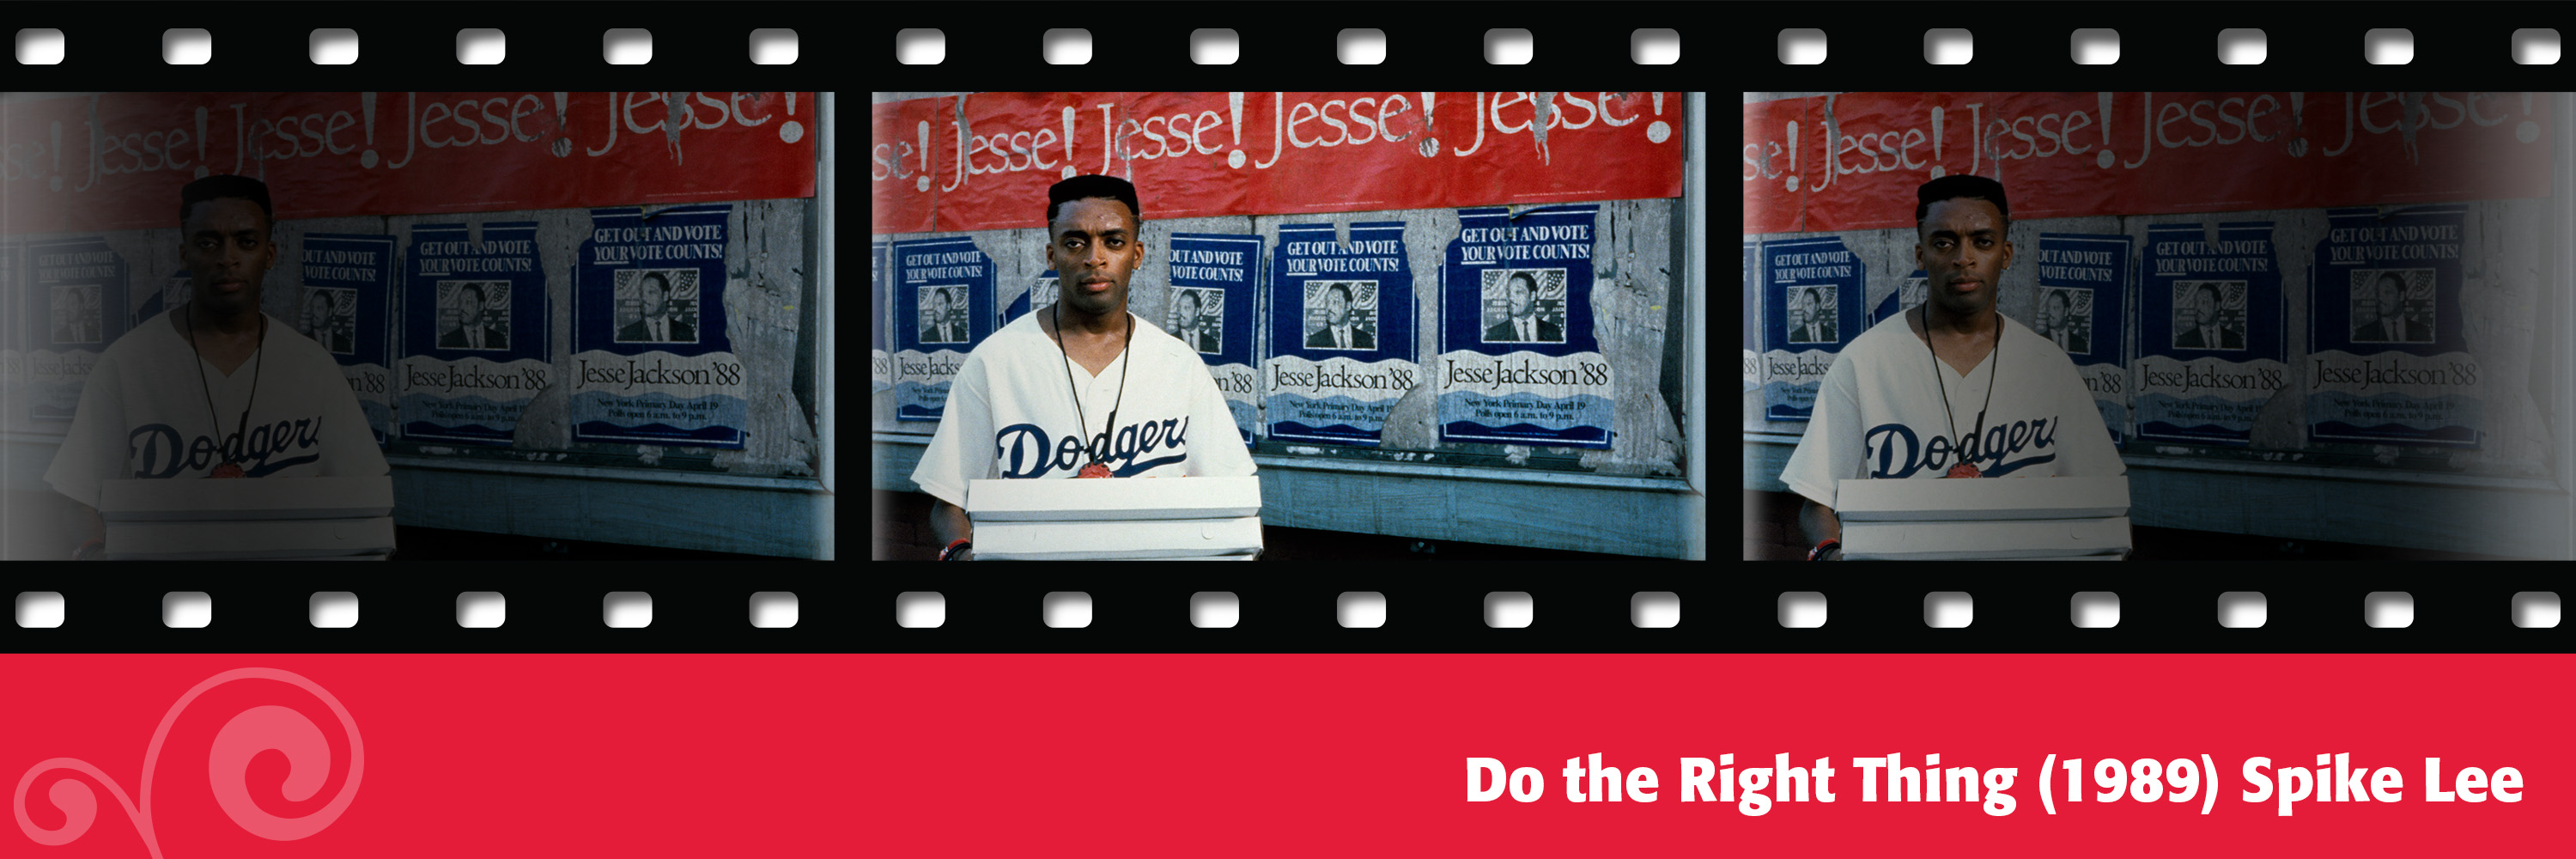 Do the Right Thing (1989) Spike Lee